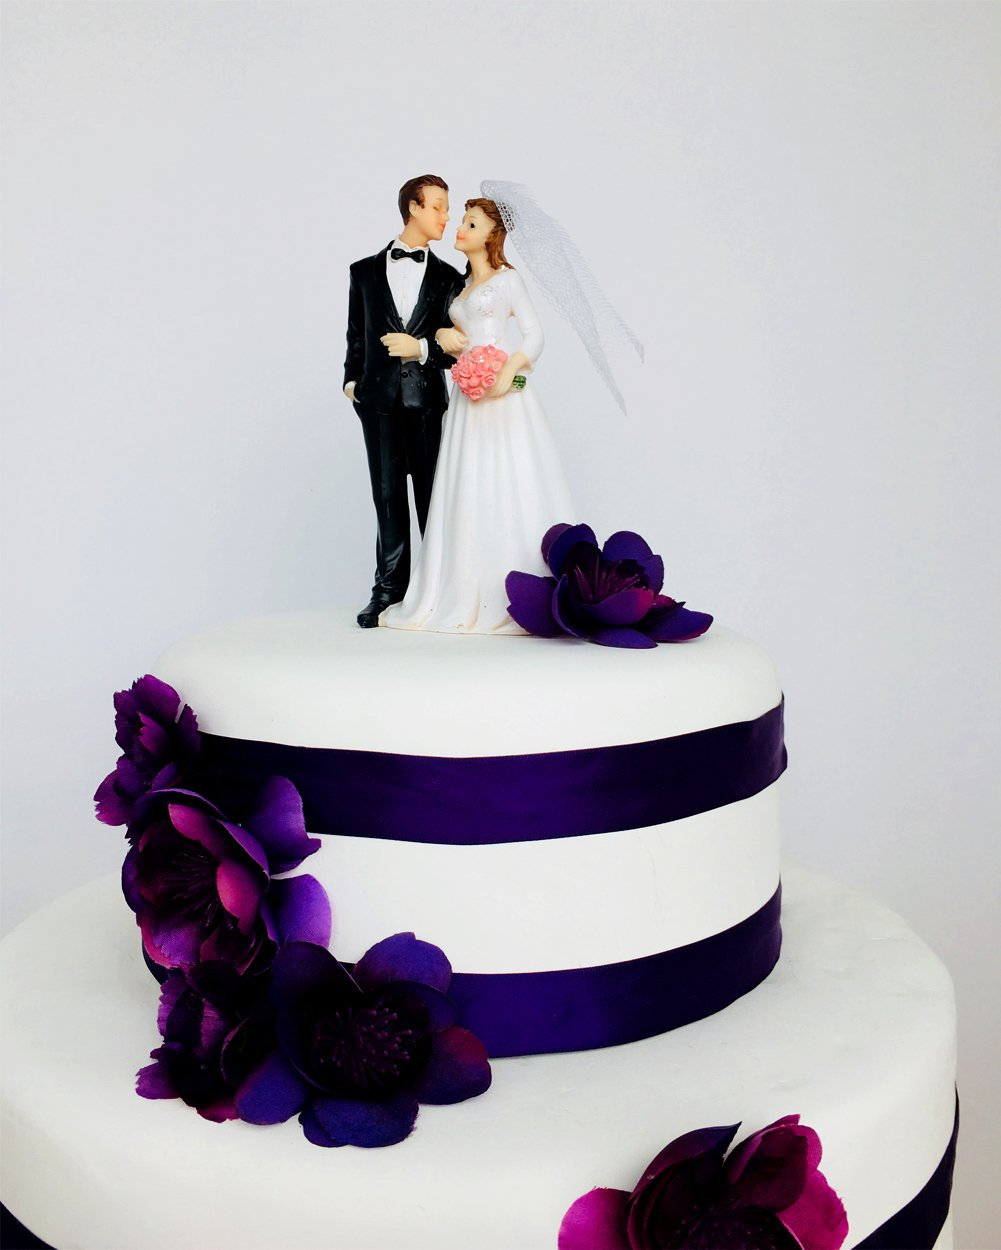 Wedding Cake Topper Funny & Romantic Groom And Bride holding hands with flowers Figurine | Toppers For Wedding Cakes Decoration | Hand Painted & Unique Figurines by zy retail (Image #5)